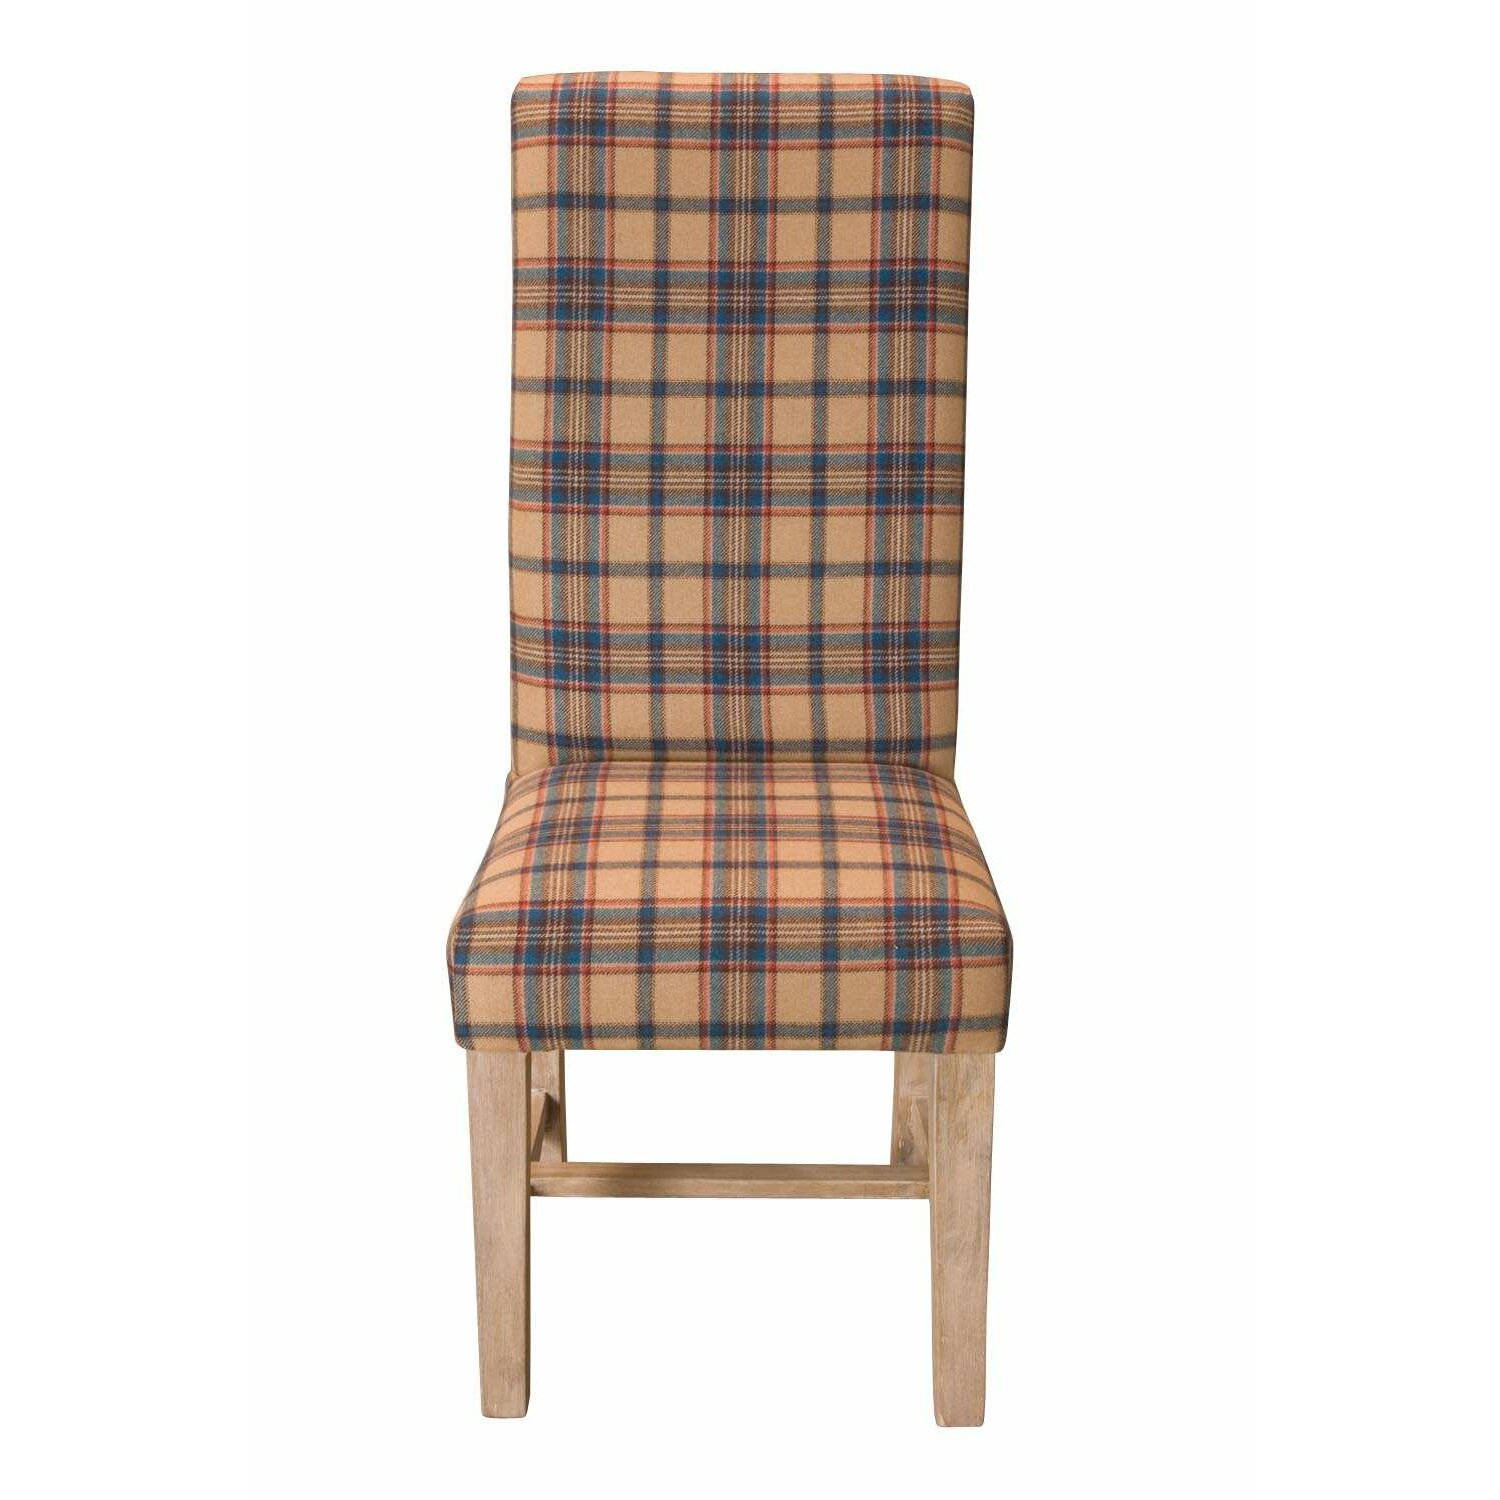 Ch teau chic solid wood upholstered dining chair wayfair uk